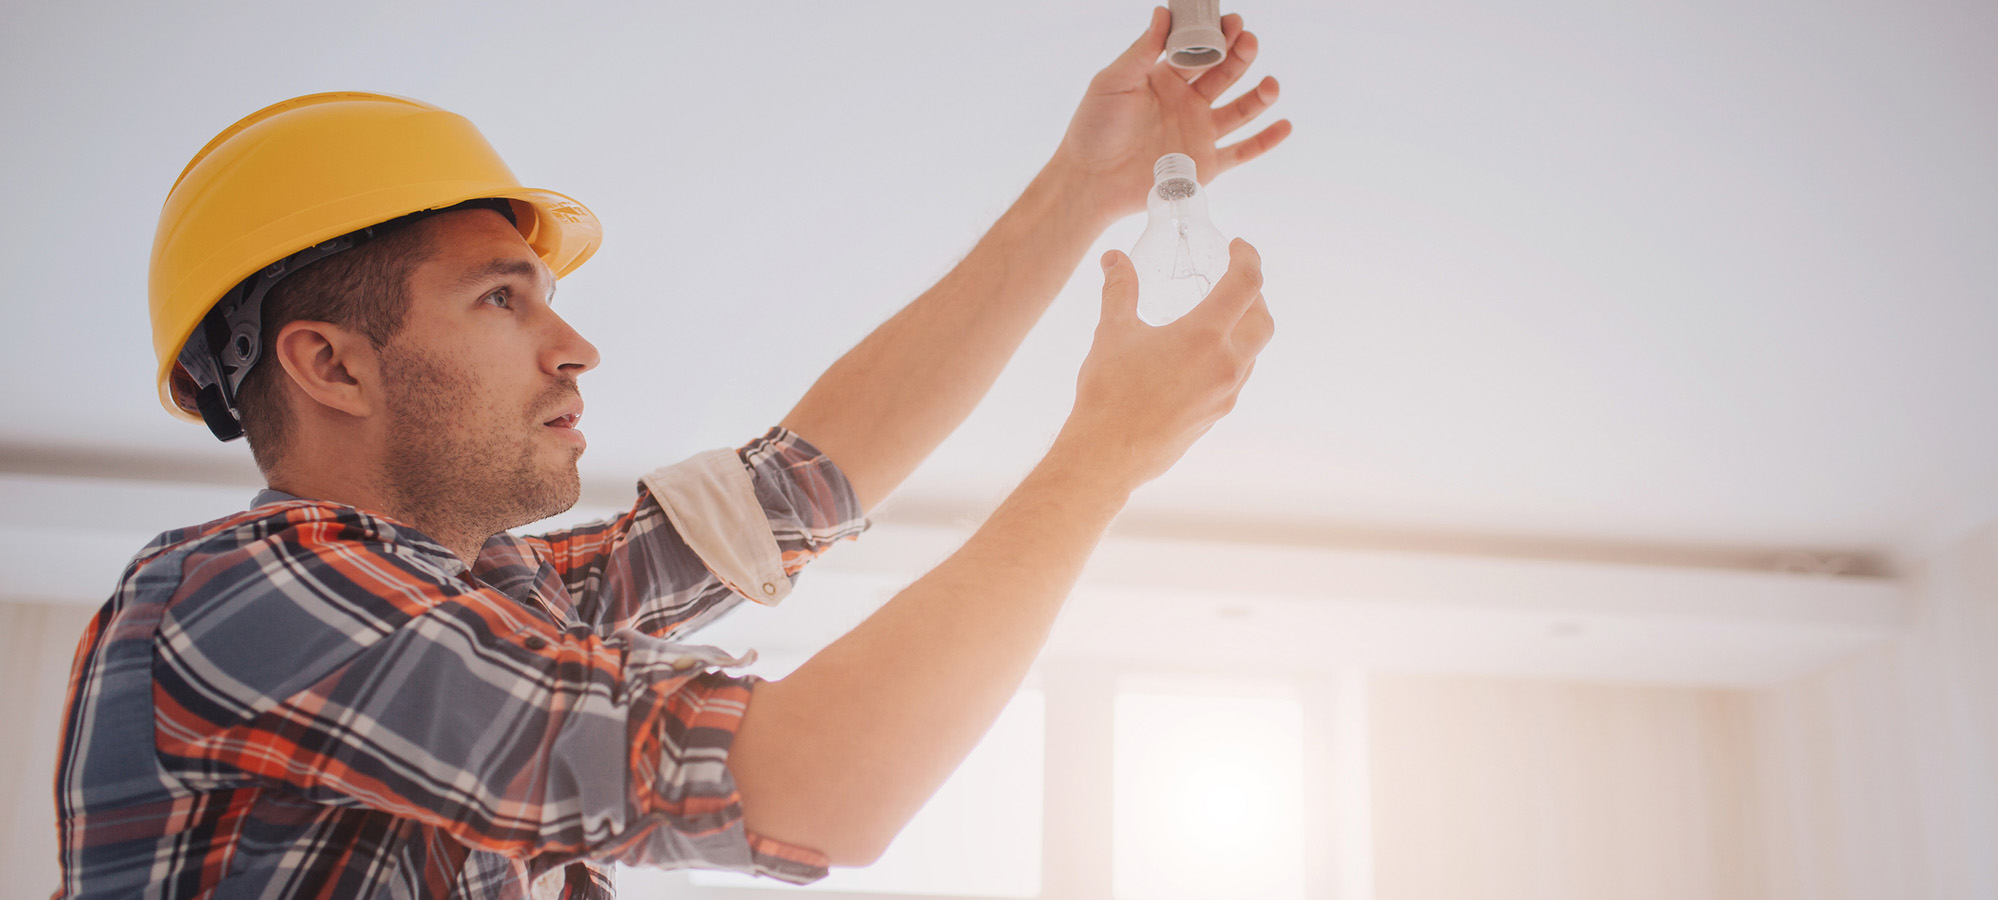 contractor installs energy efficient lightbulb to claim section 179d deduction